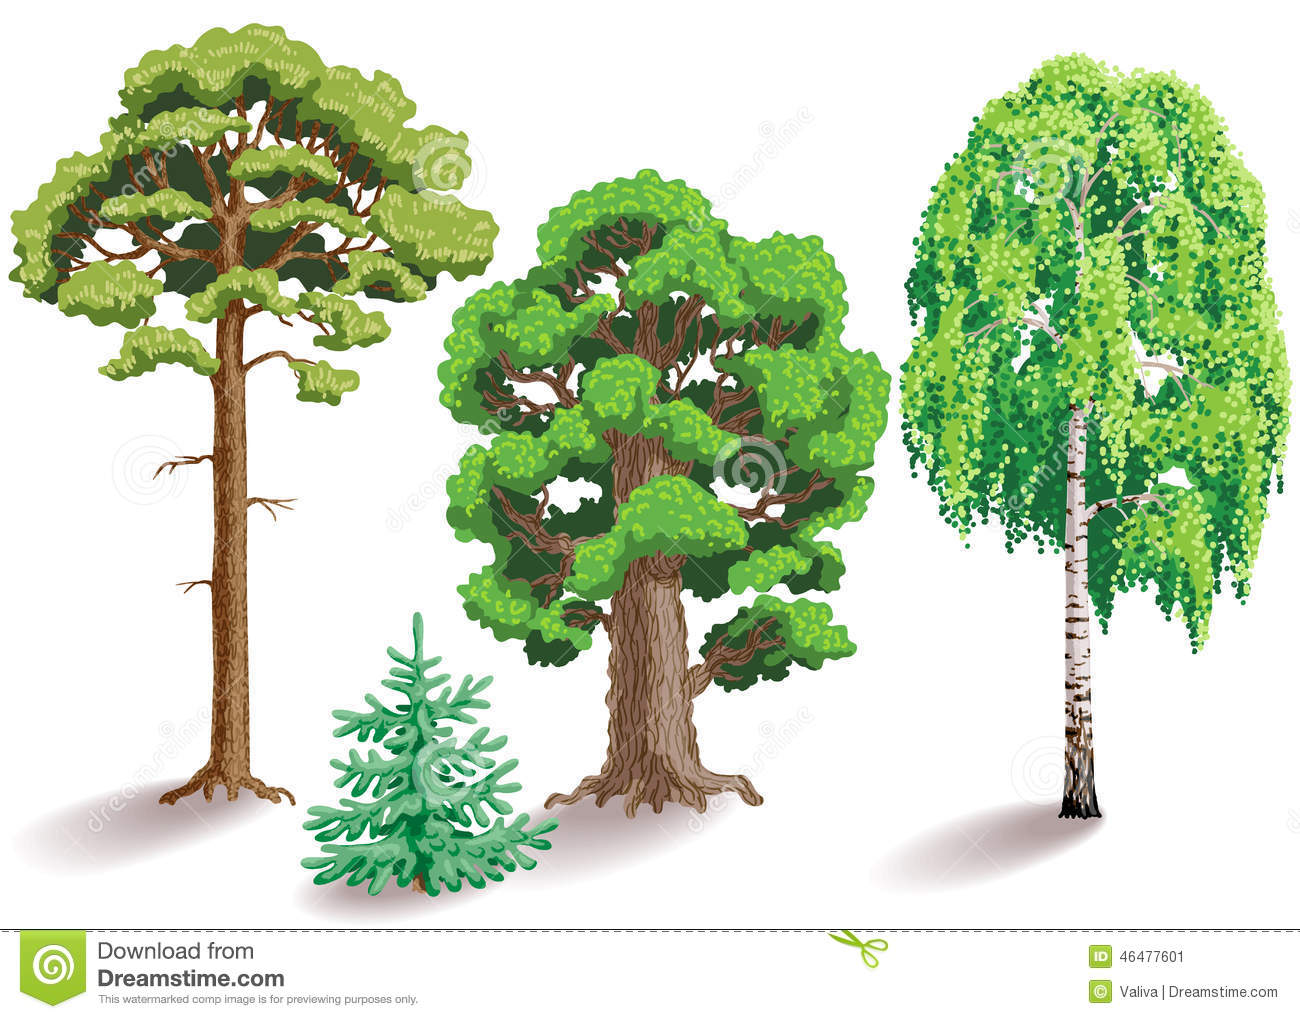 Types of trees oak birch fir pine isolated on white